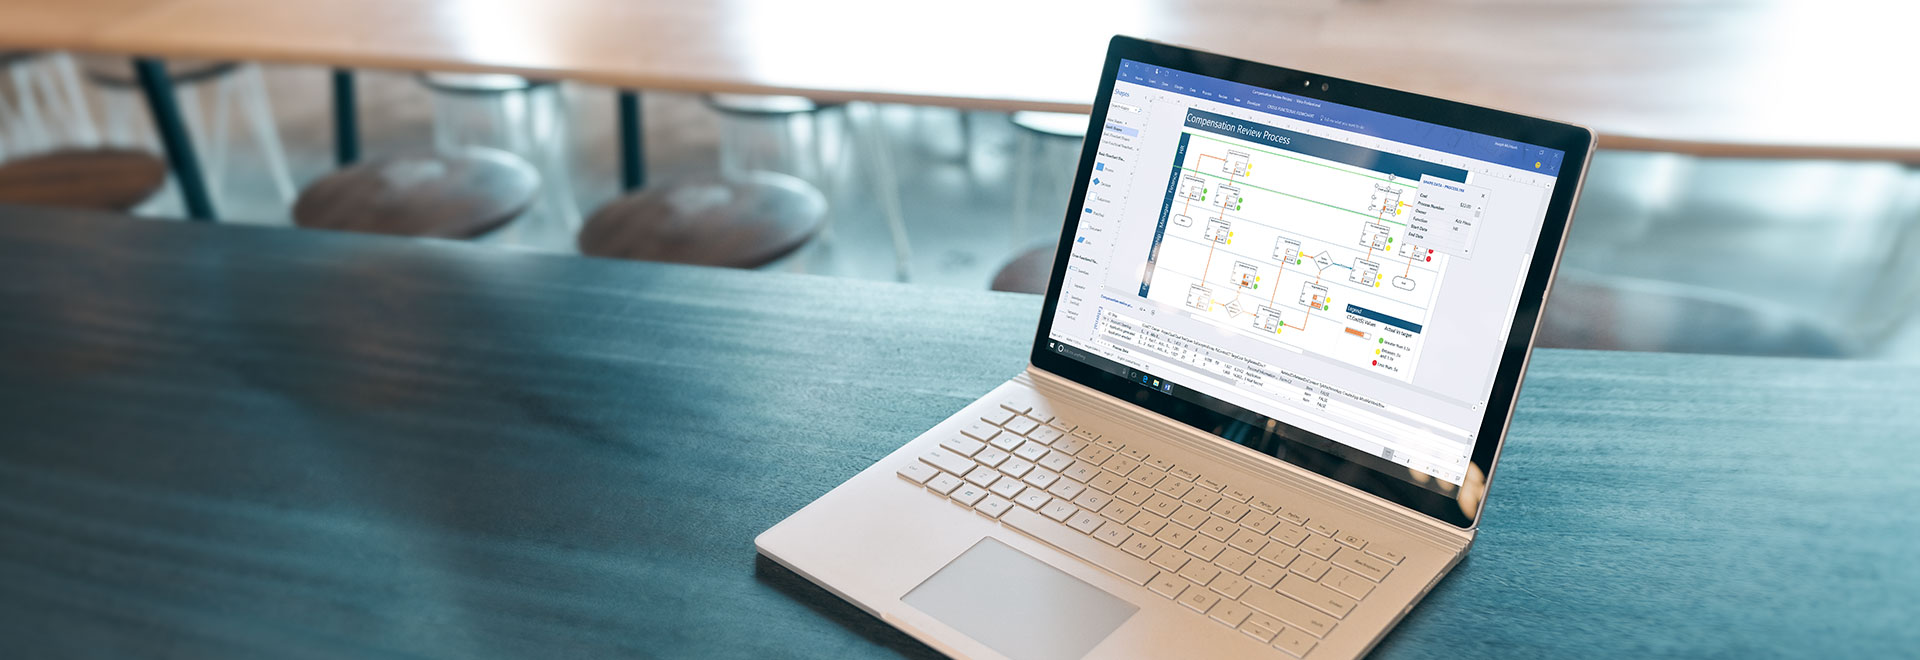 A laptop displaying a process workflow diagram in Visio Pro for Office 365